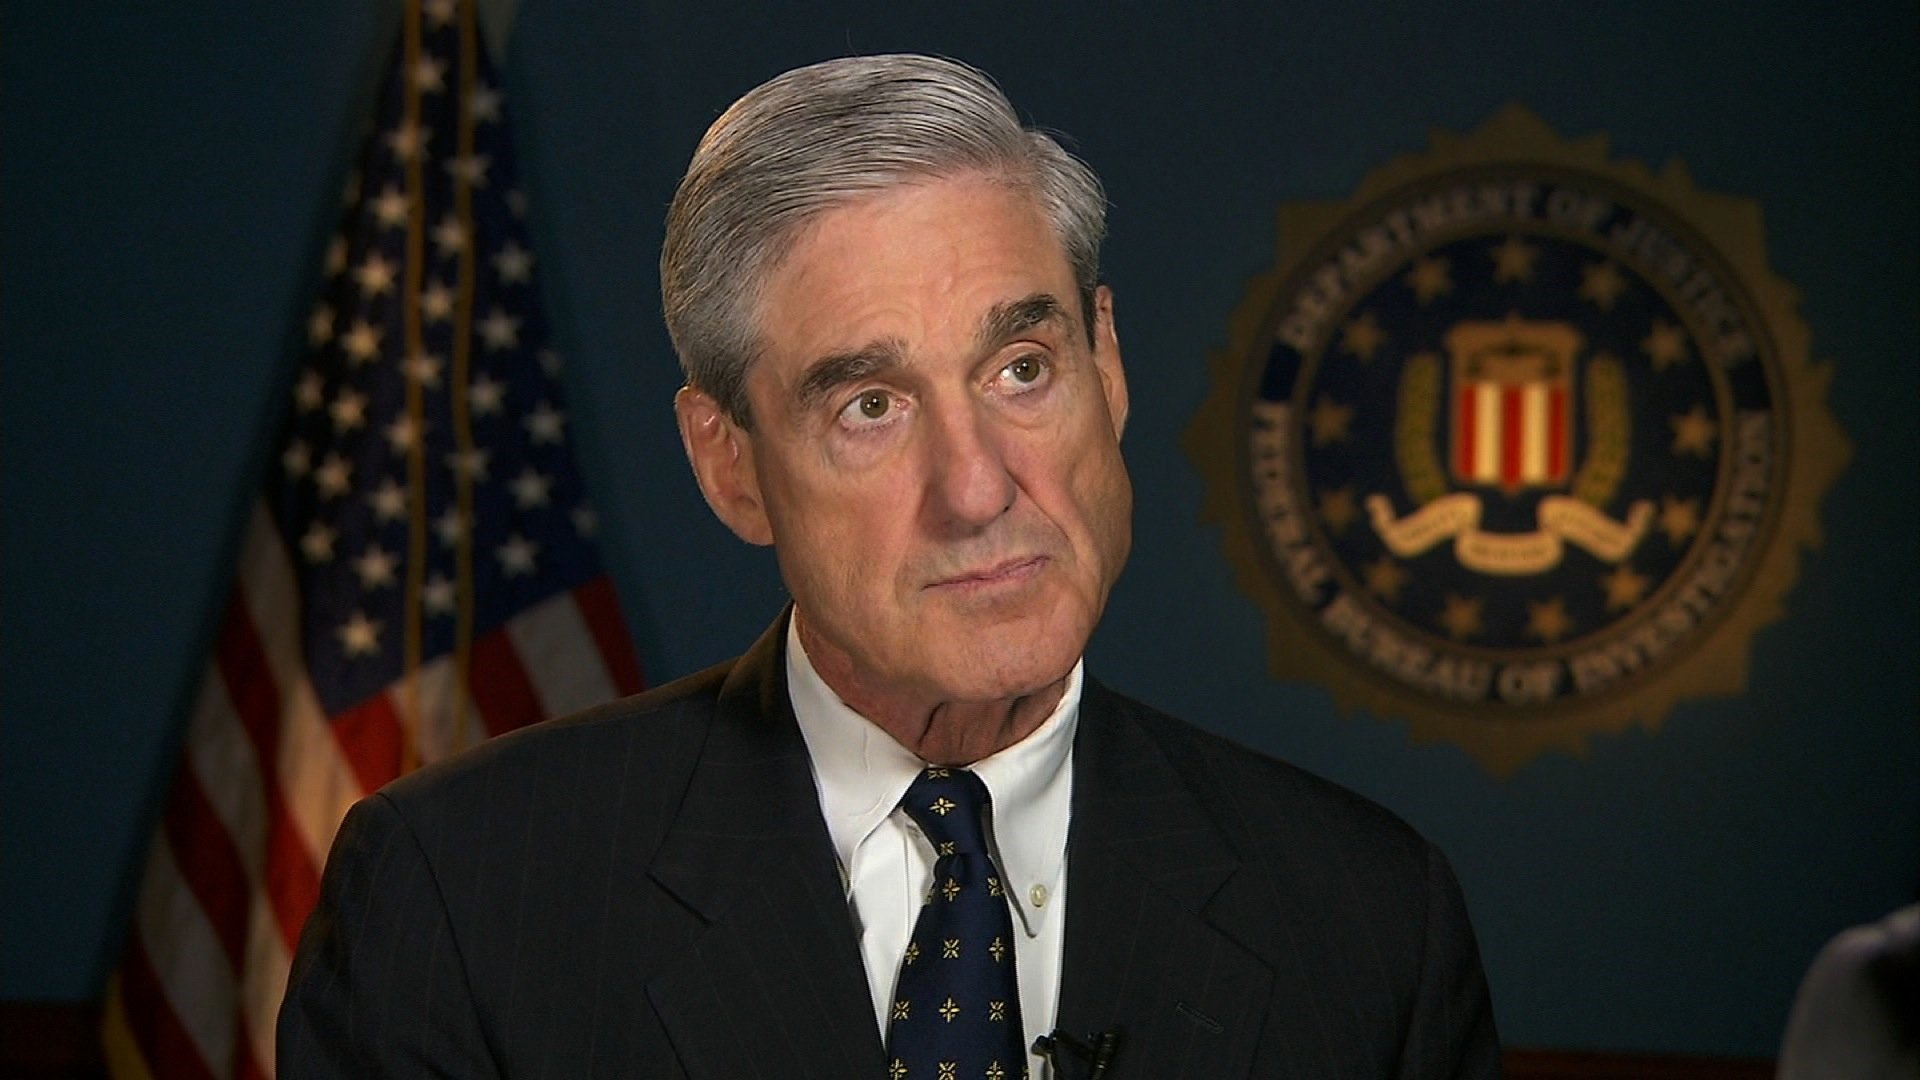 Justice Department Special Counsel Robert Mueller and key members of his team revealed millions of dollars of financial holdings and previous legal work for companies that could figure into their investigation of President Donald Trump's campaign